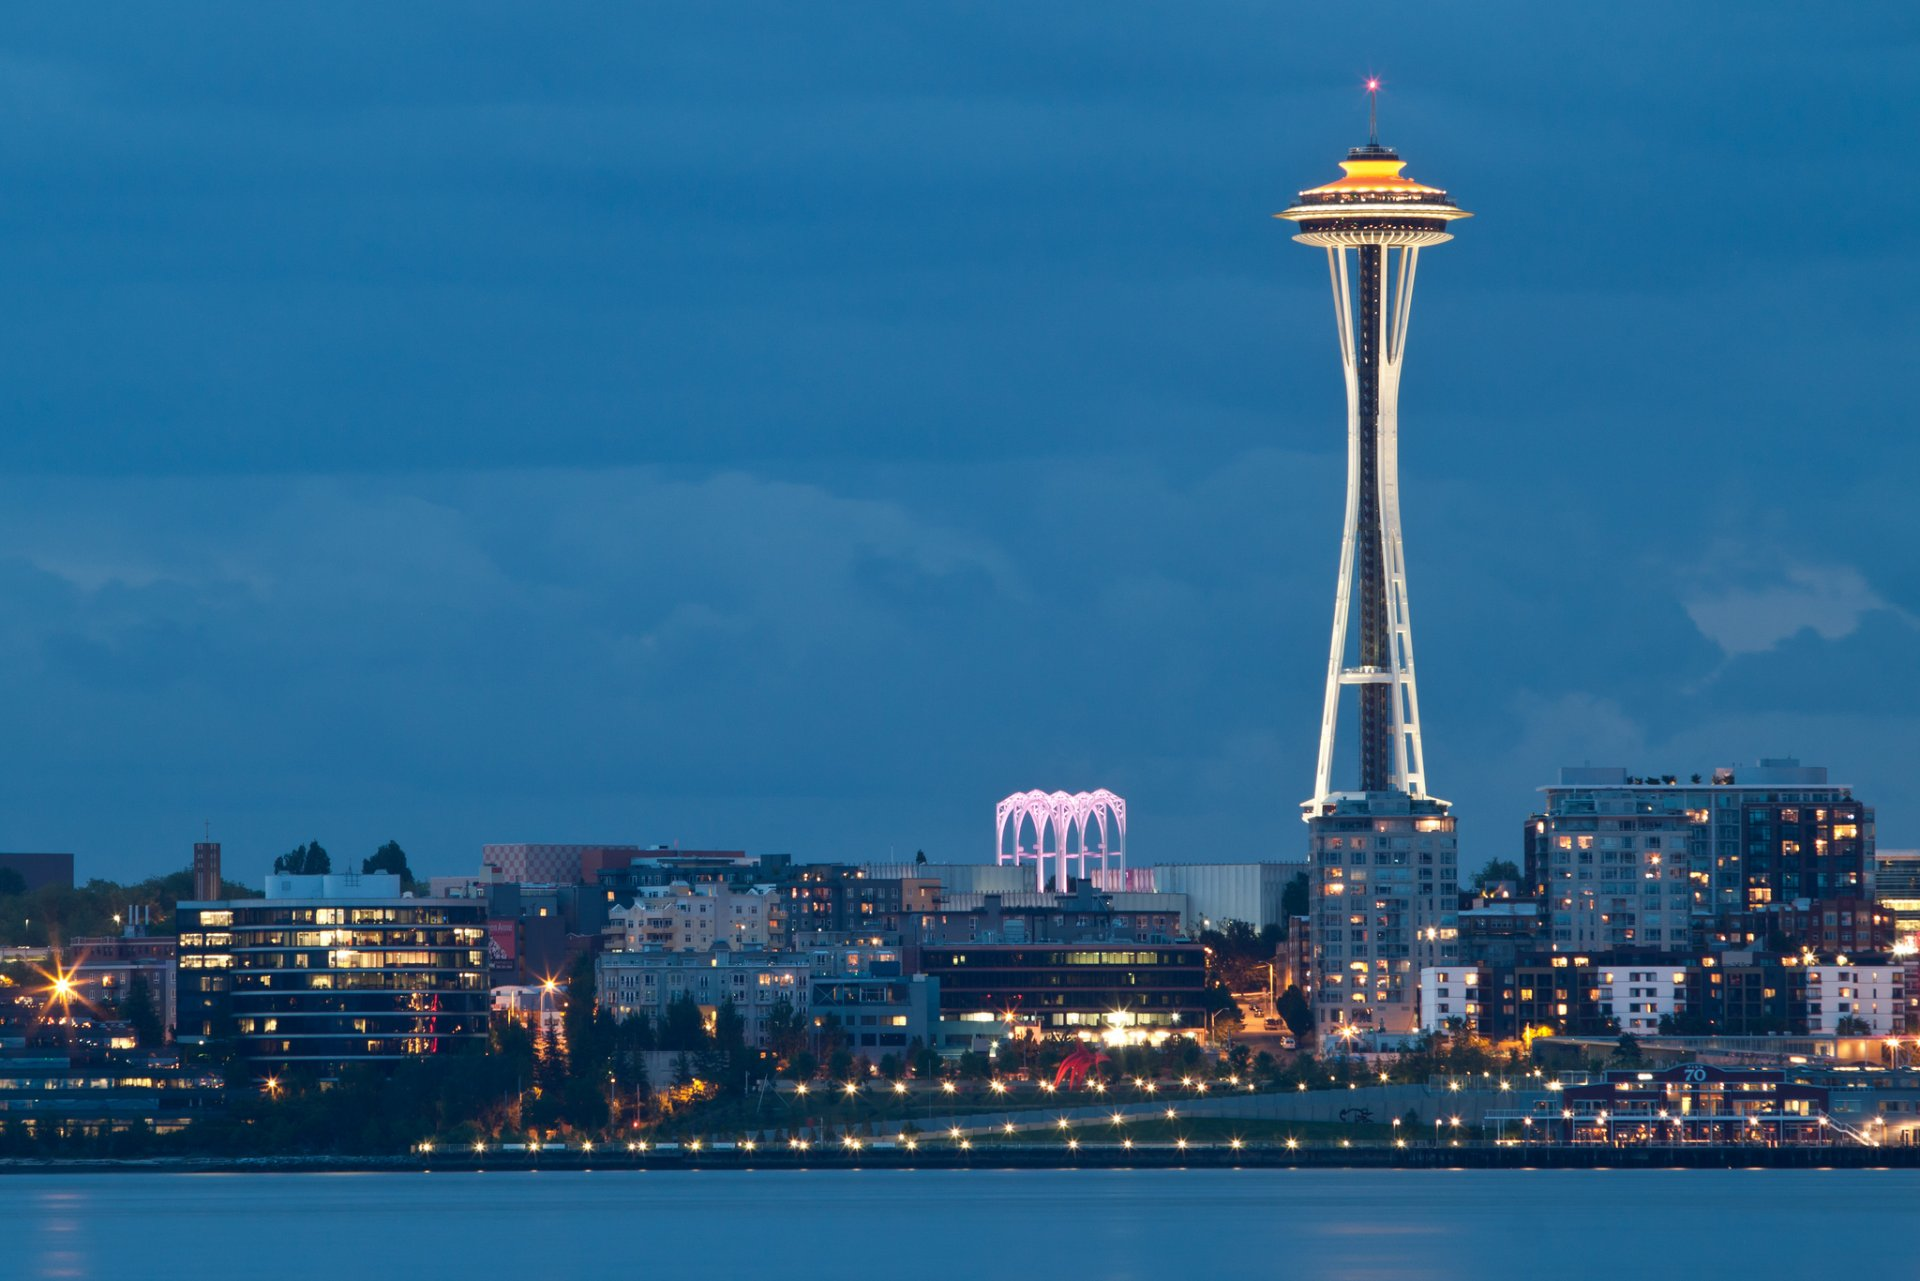 space needle 3,952 tweets • 329 photos/videos • 345k followers check out the latest tweets from space needle (@space_needle.